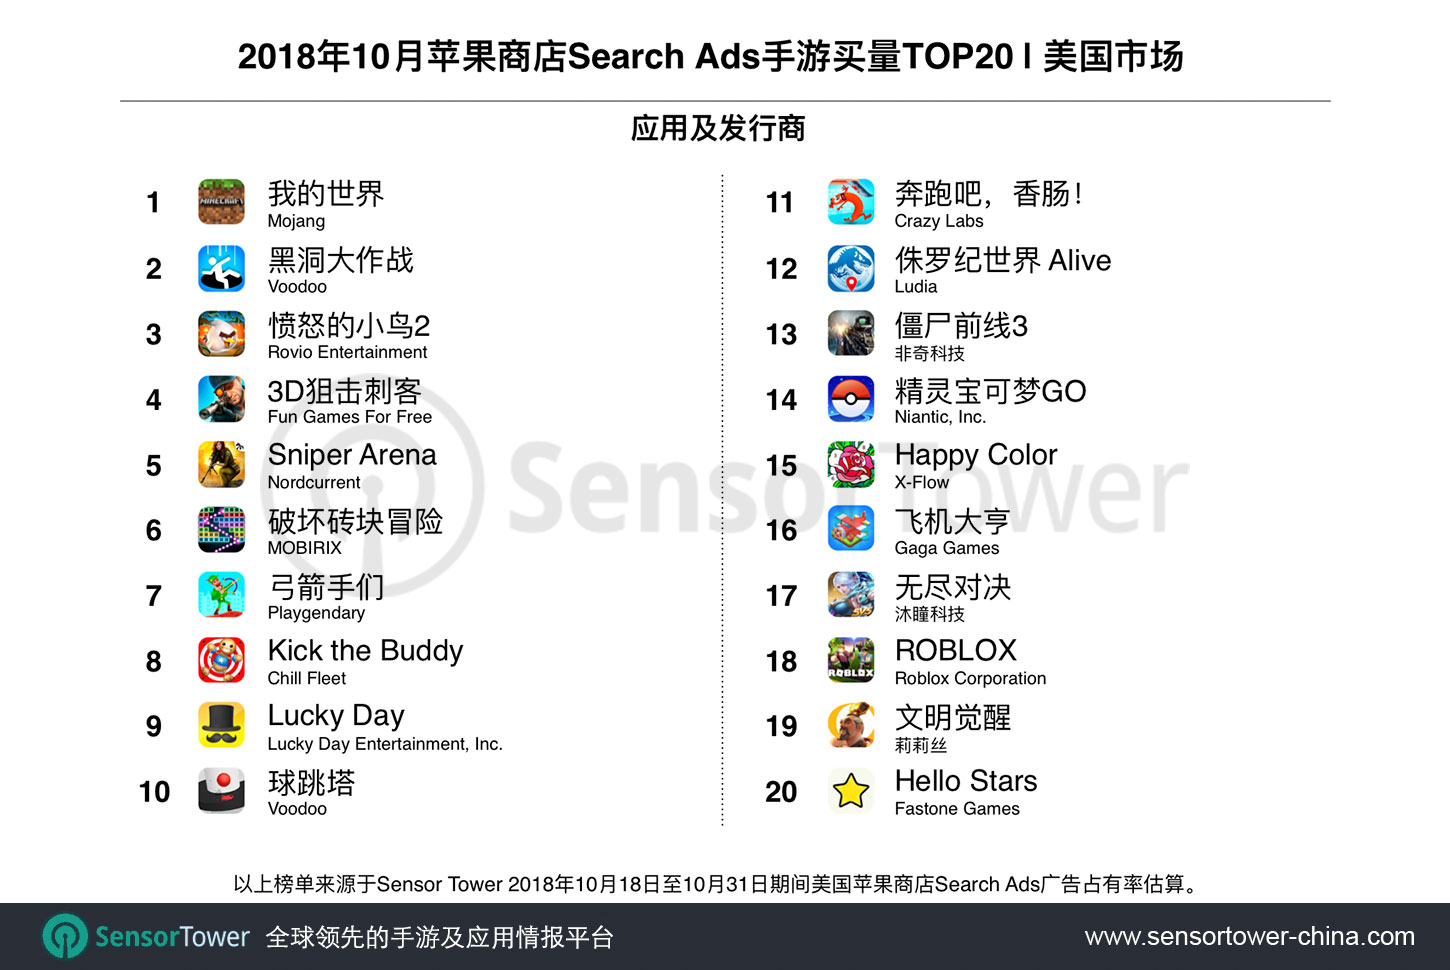 October 2018 Top Game Advertisers on U.S. App Store Search Ads by Share of Voice